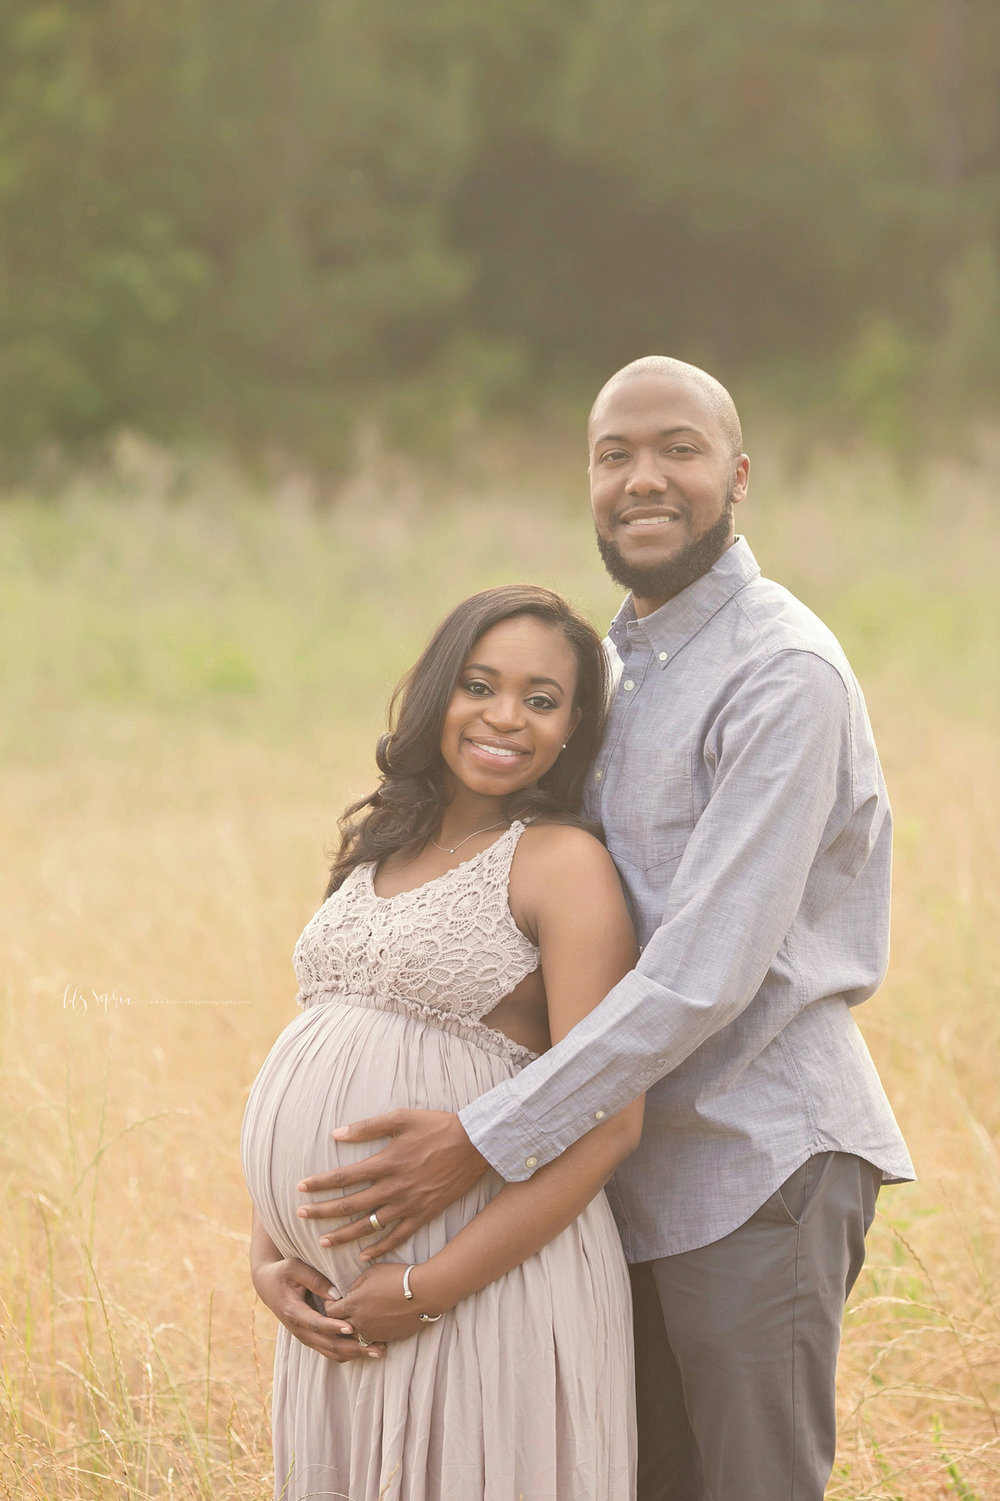 Pregnant African American Couple Expecting Baby Girl Standing In An Atlanta Field The Woman Is